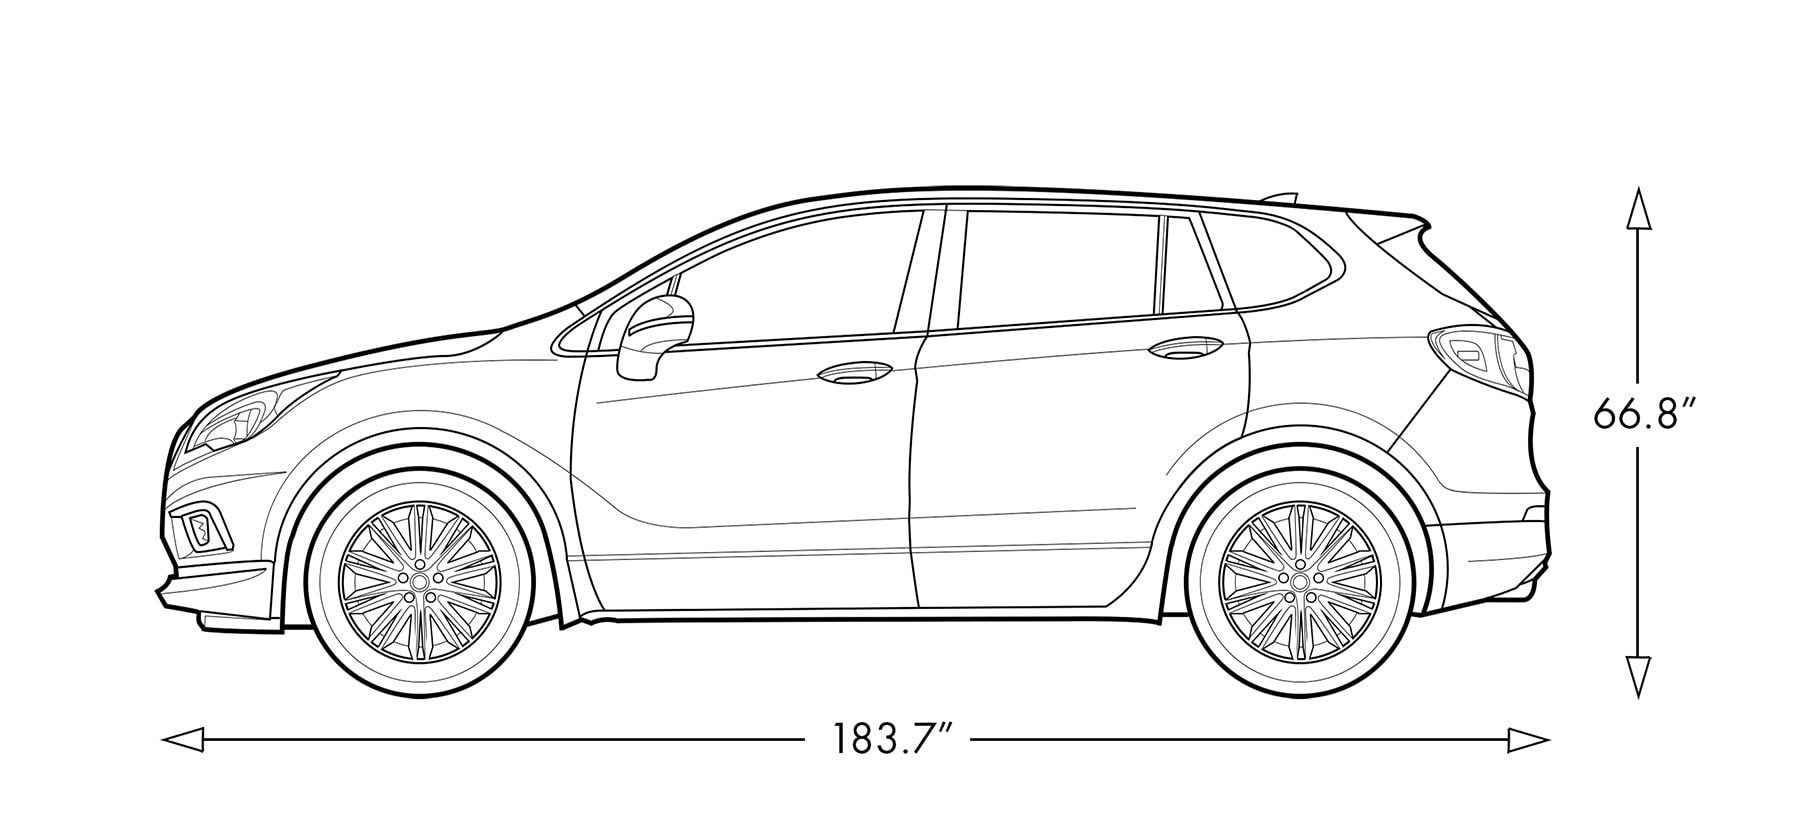 hight resolution of 2018 buick envision small luxury suv vehicle dimensions diagram